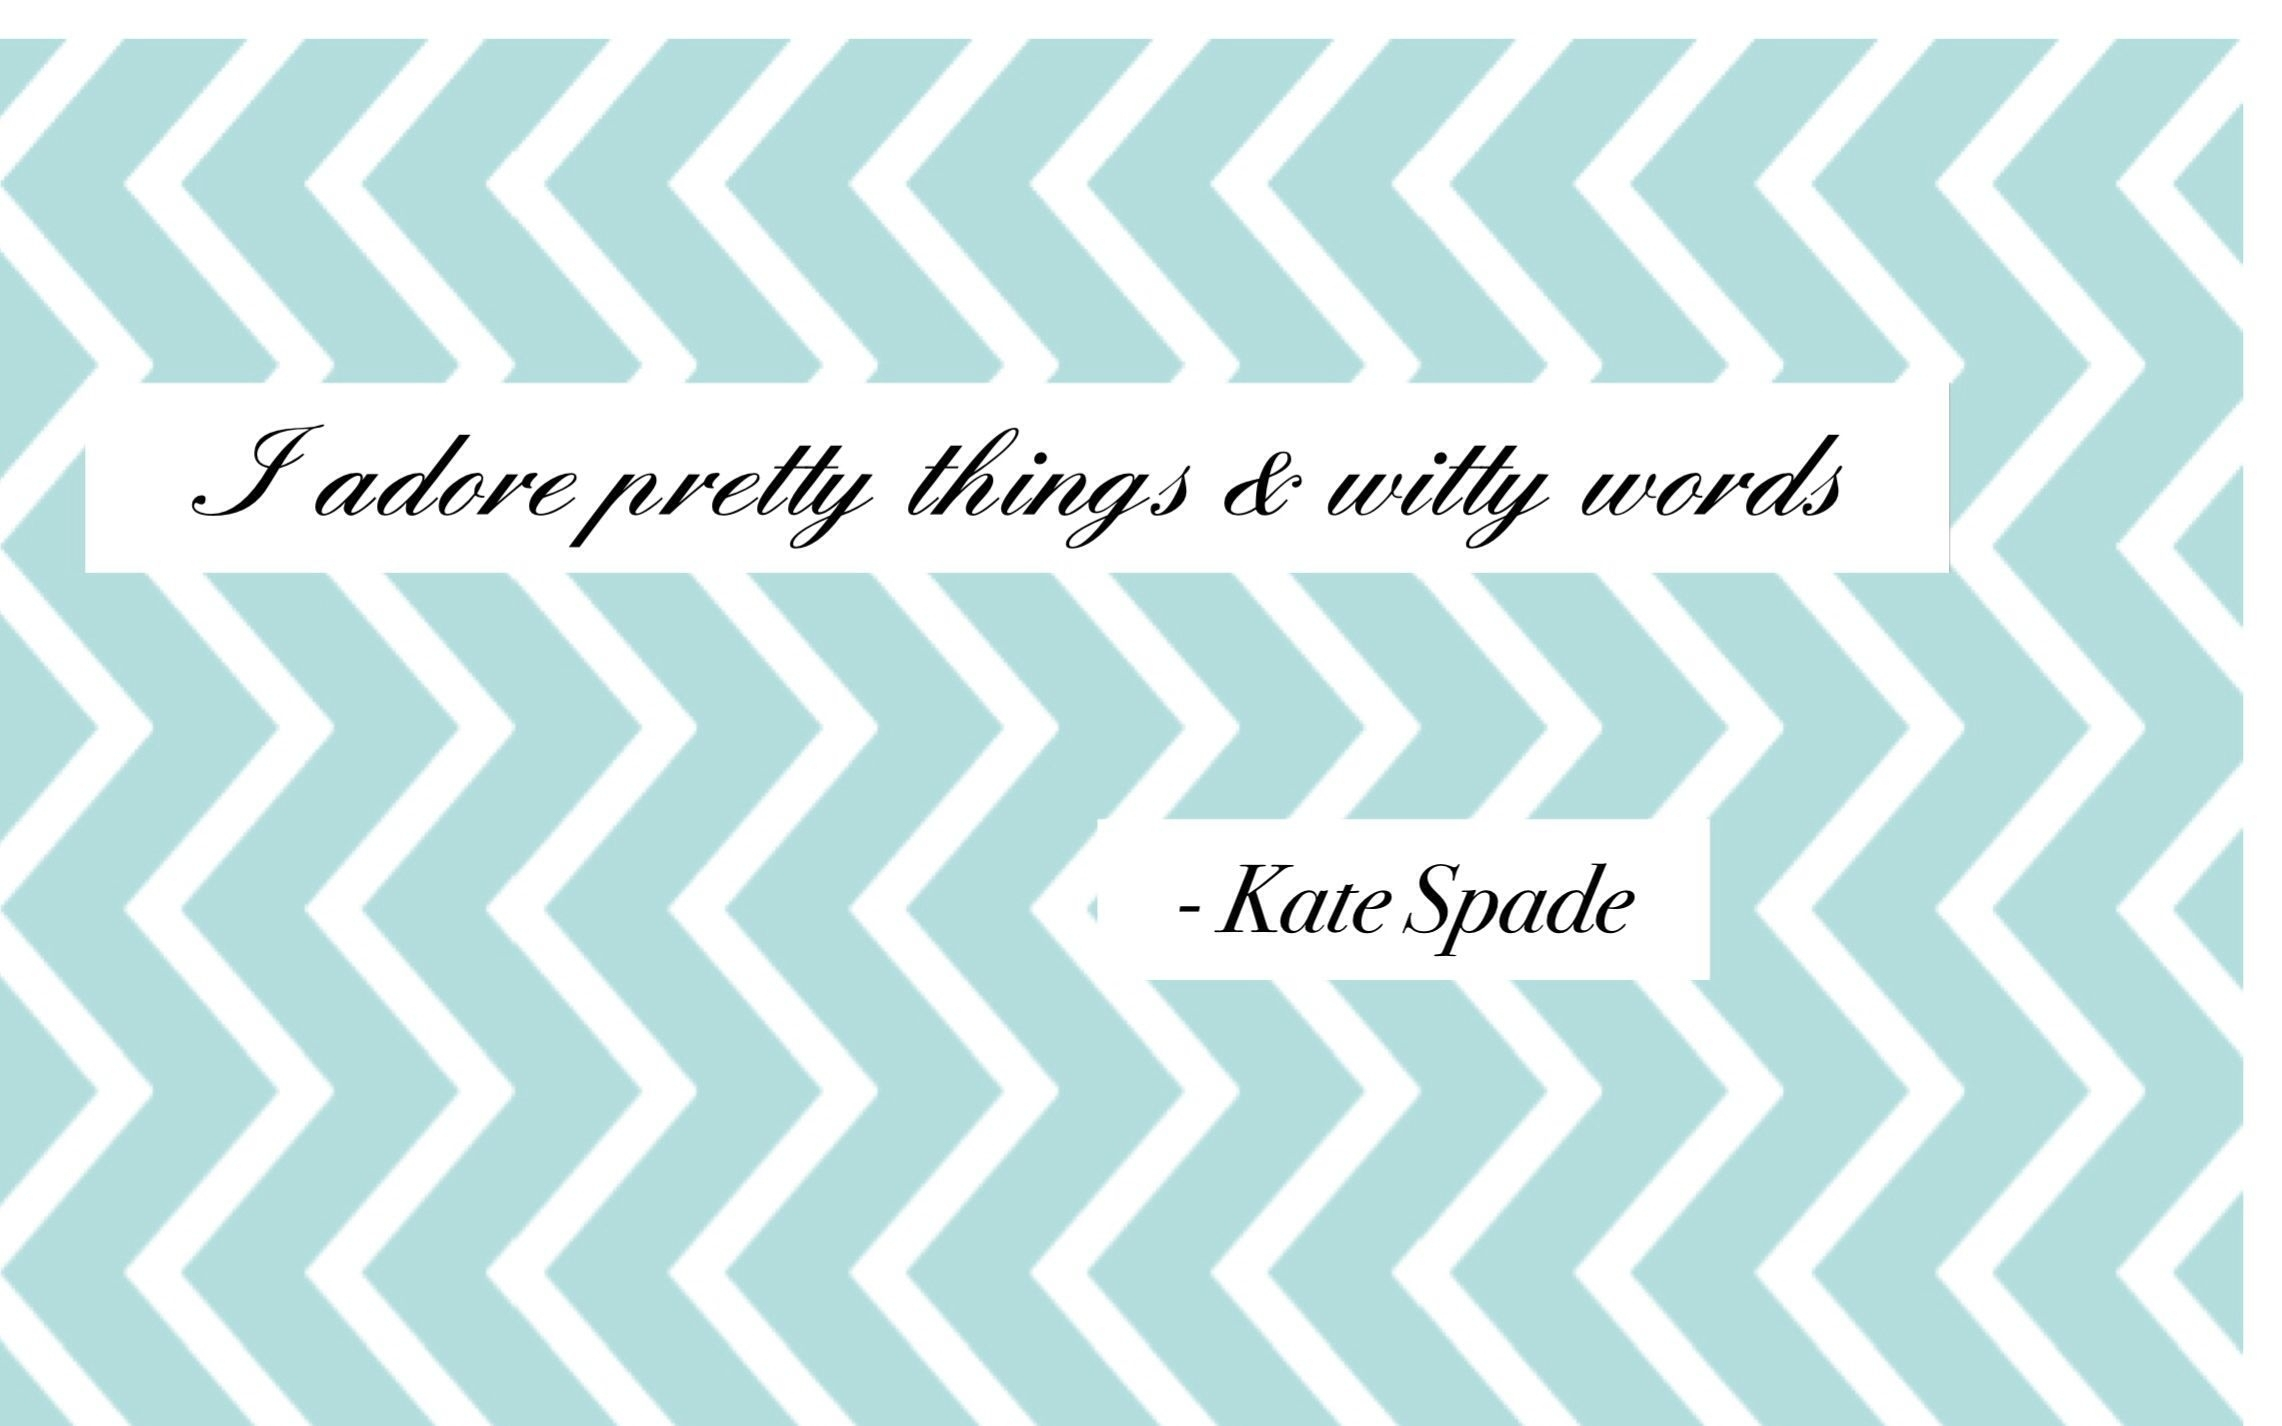 Title : kate spade wallpaper | kate spade quotes wallpaper cardigans amp; chai. Dimension : 2282 x 1426. File Type : JPG/JPEG